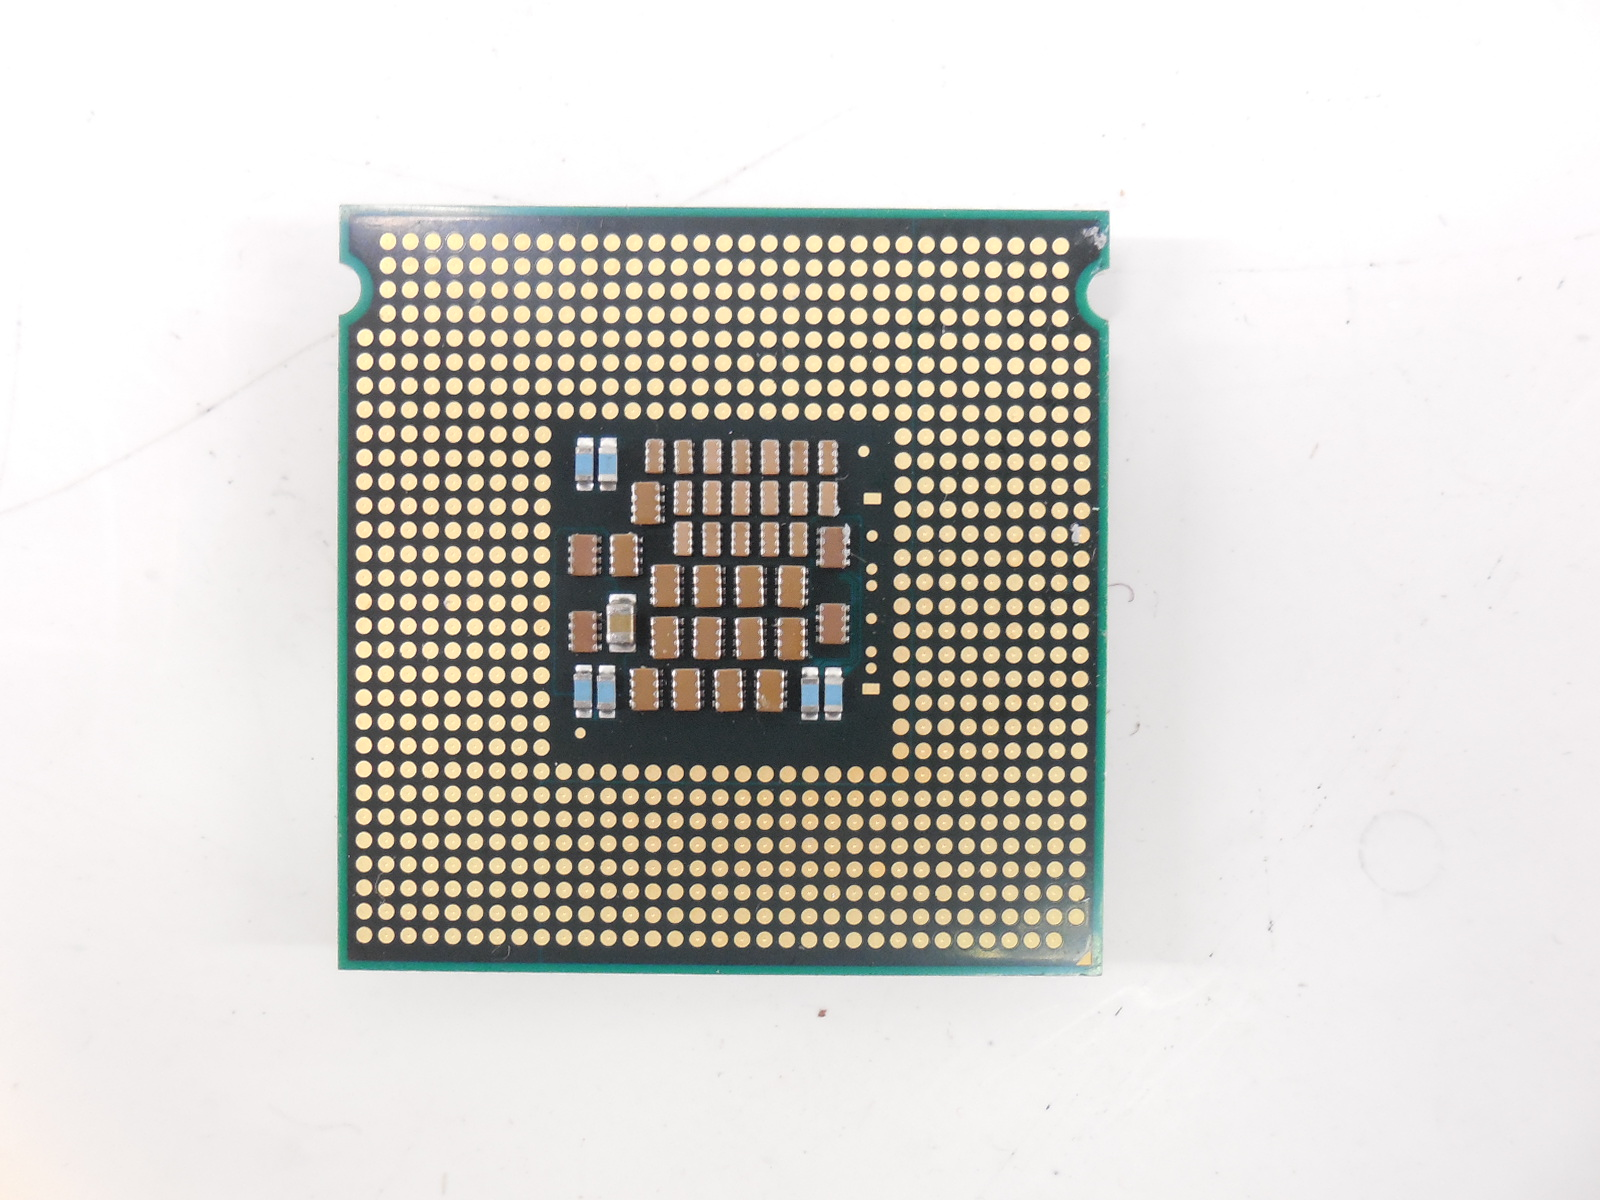 Процессор Intel Xeon Processor 5150 2.66GHz - Pic n 261618